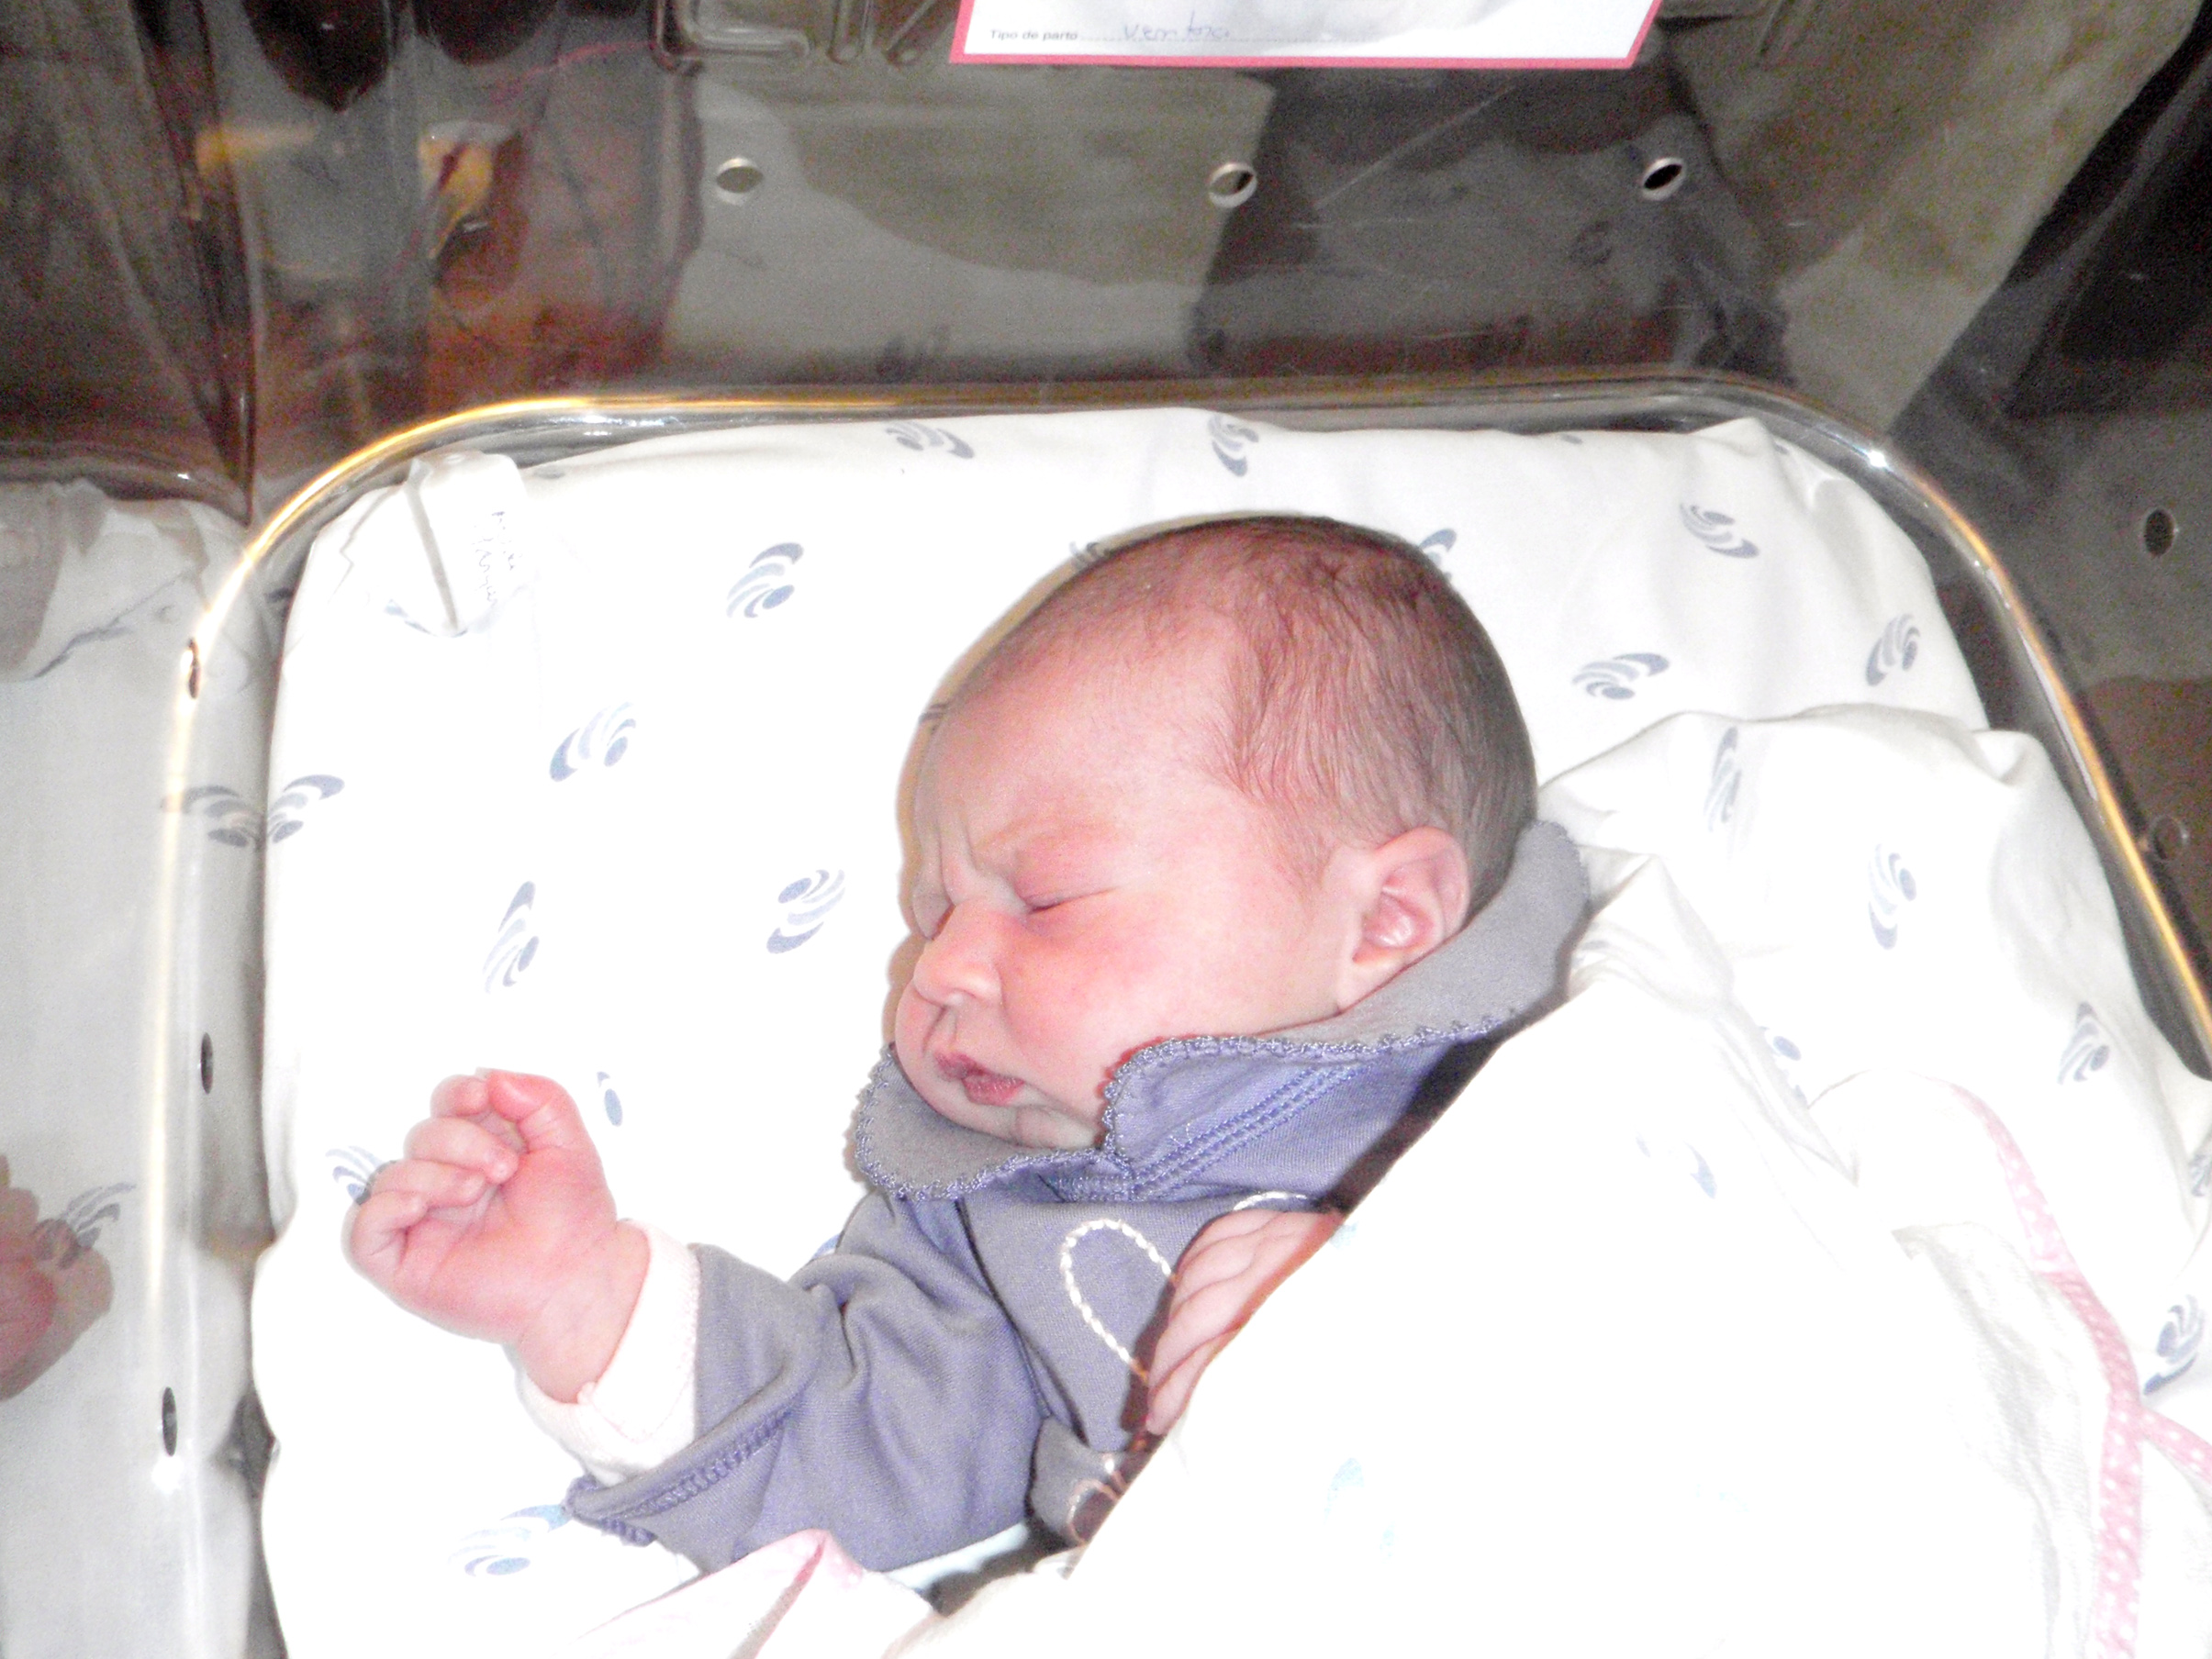 Recently newborn infant asleep photo